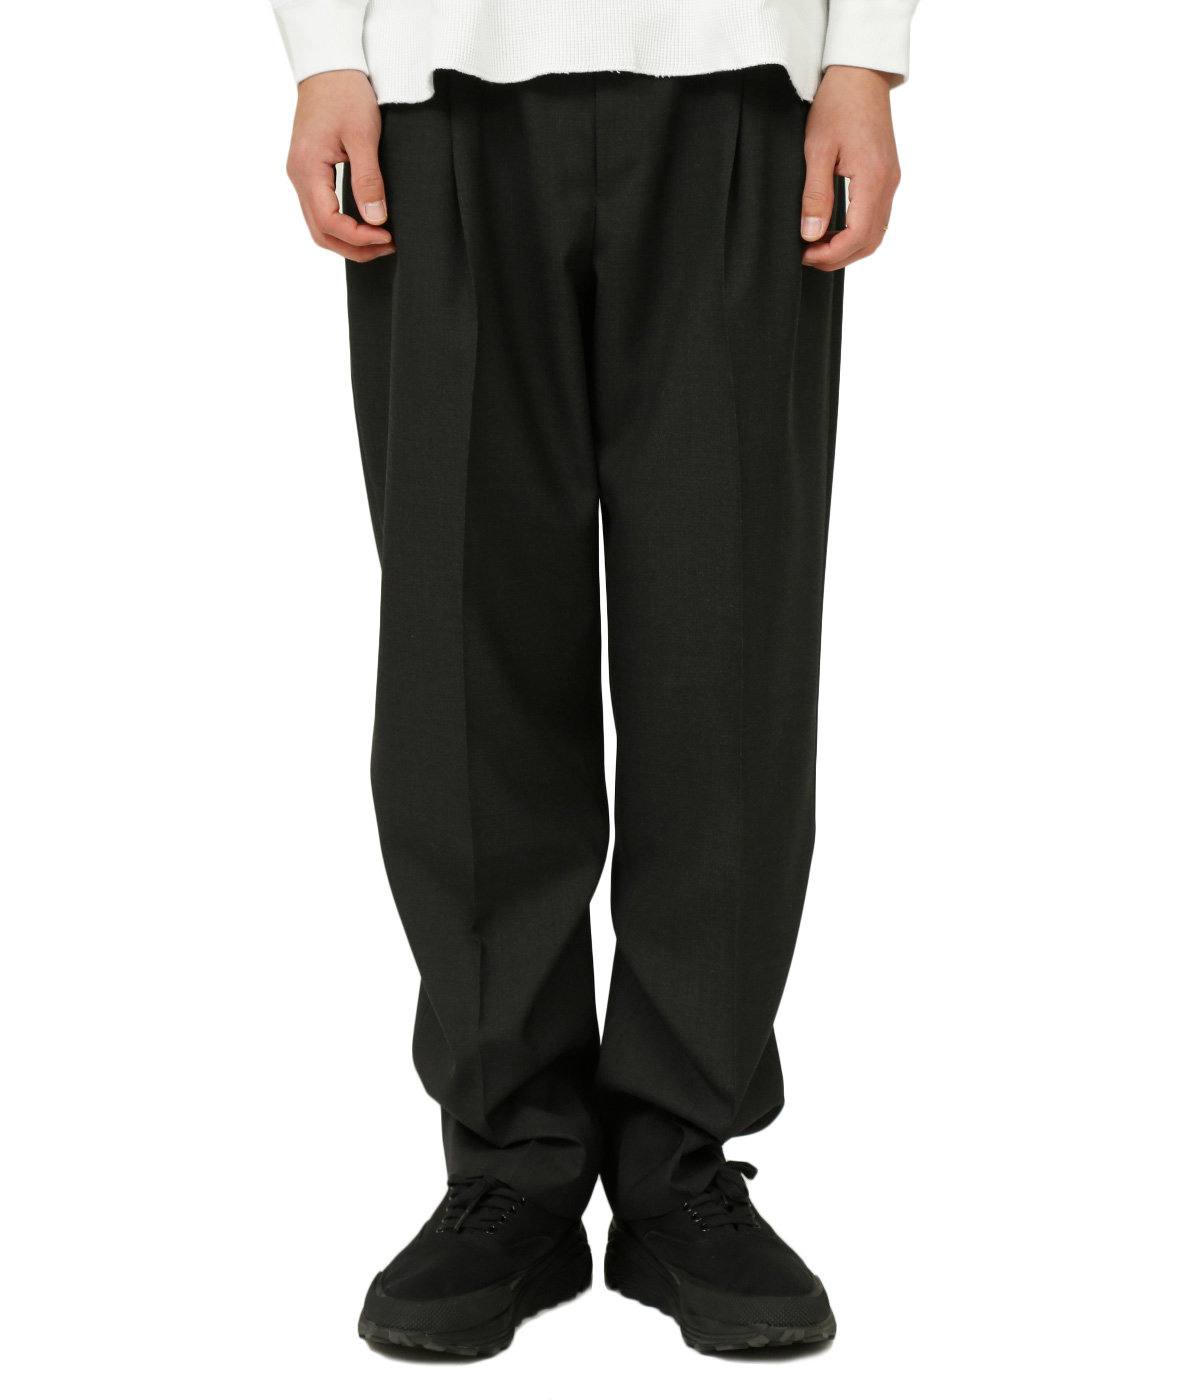 WASHABLE WOOL TROPICAL SLACKS